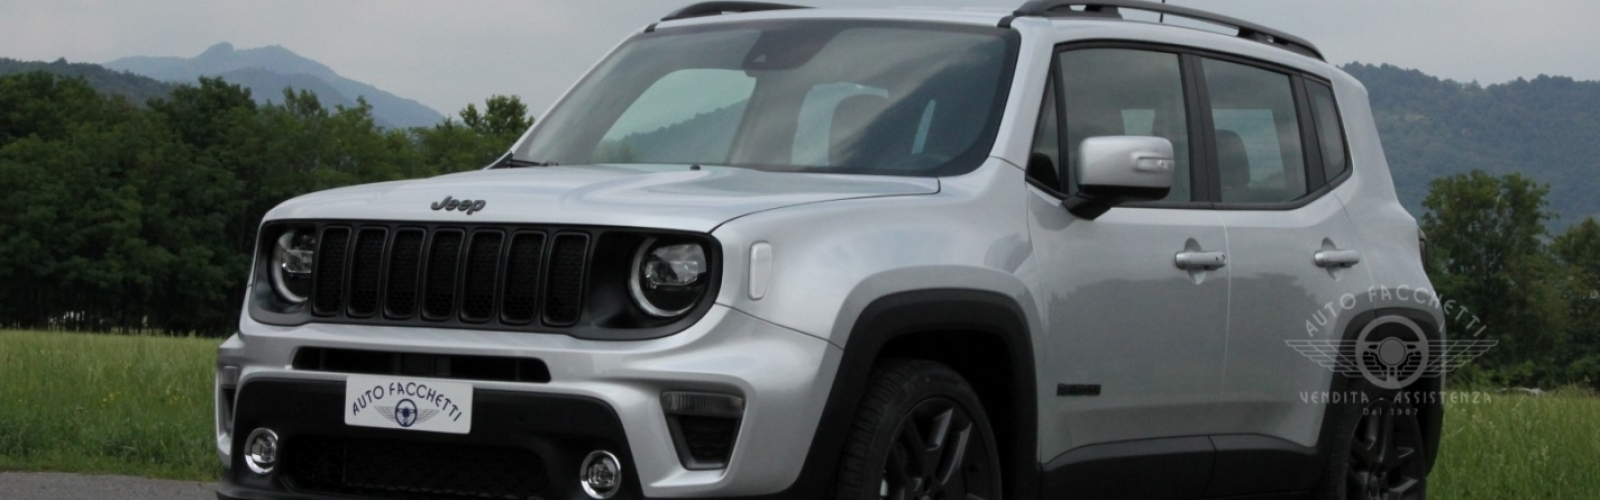 Jeep Renegade 1.3 DDCT 150CV serie S Glacer